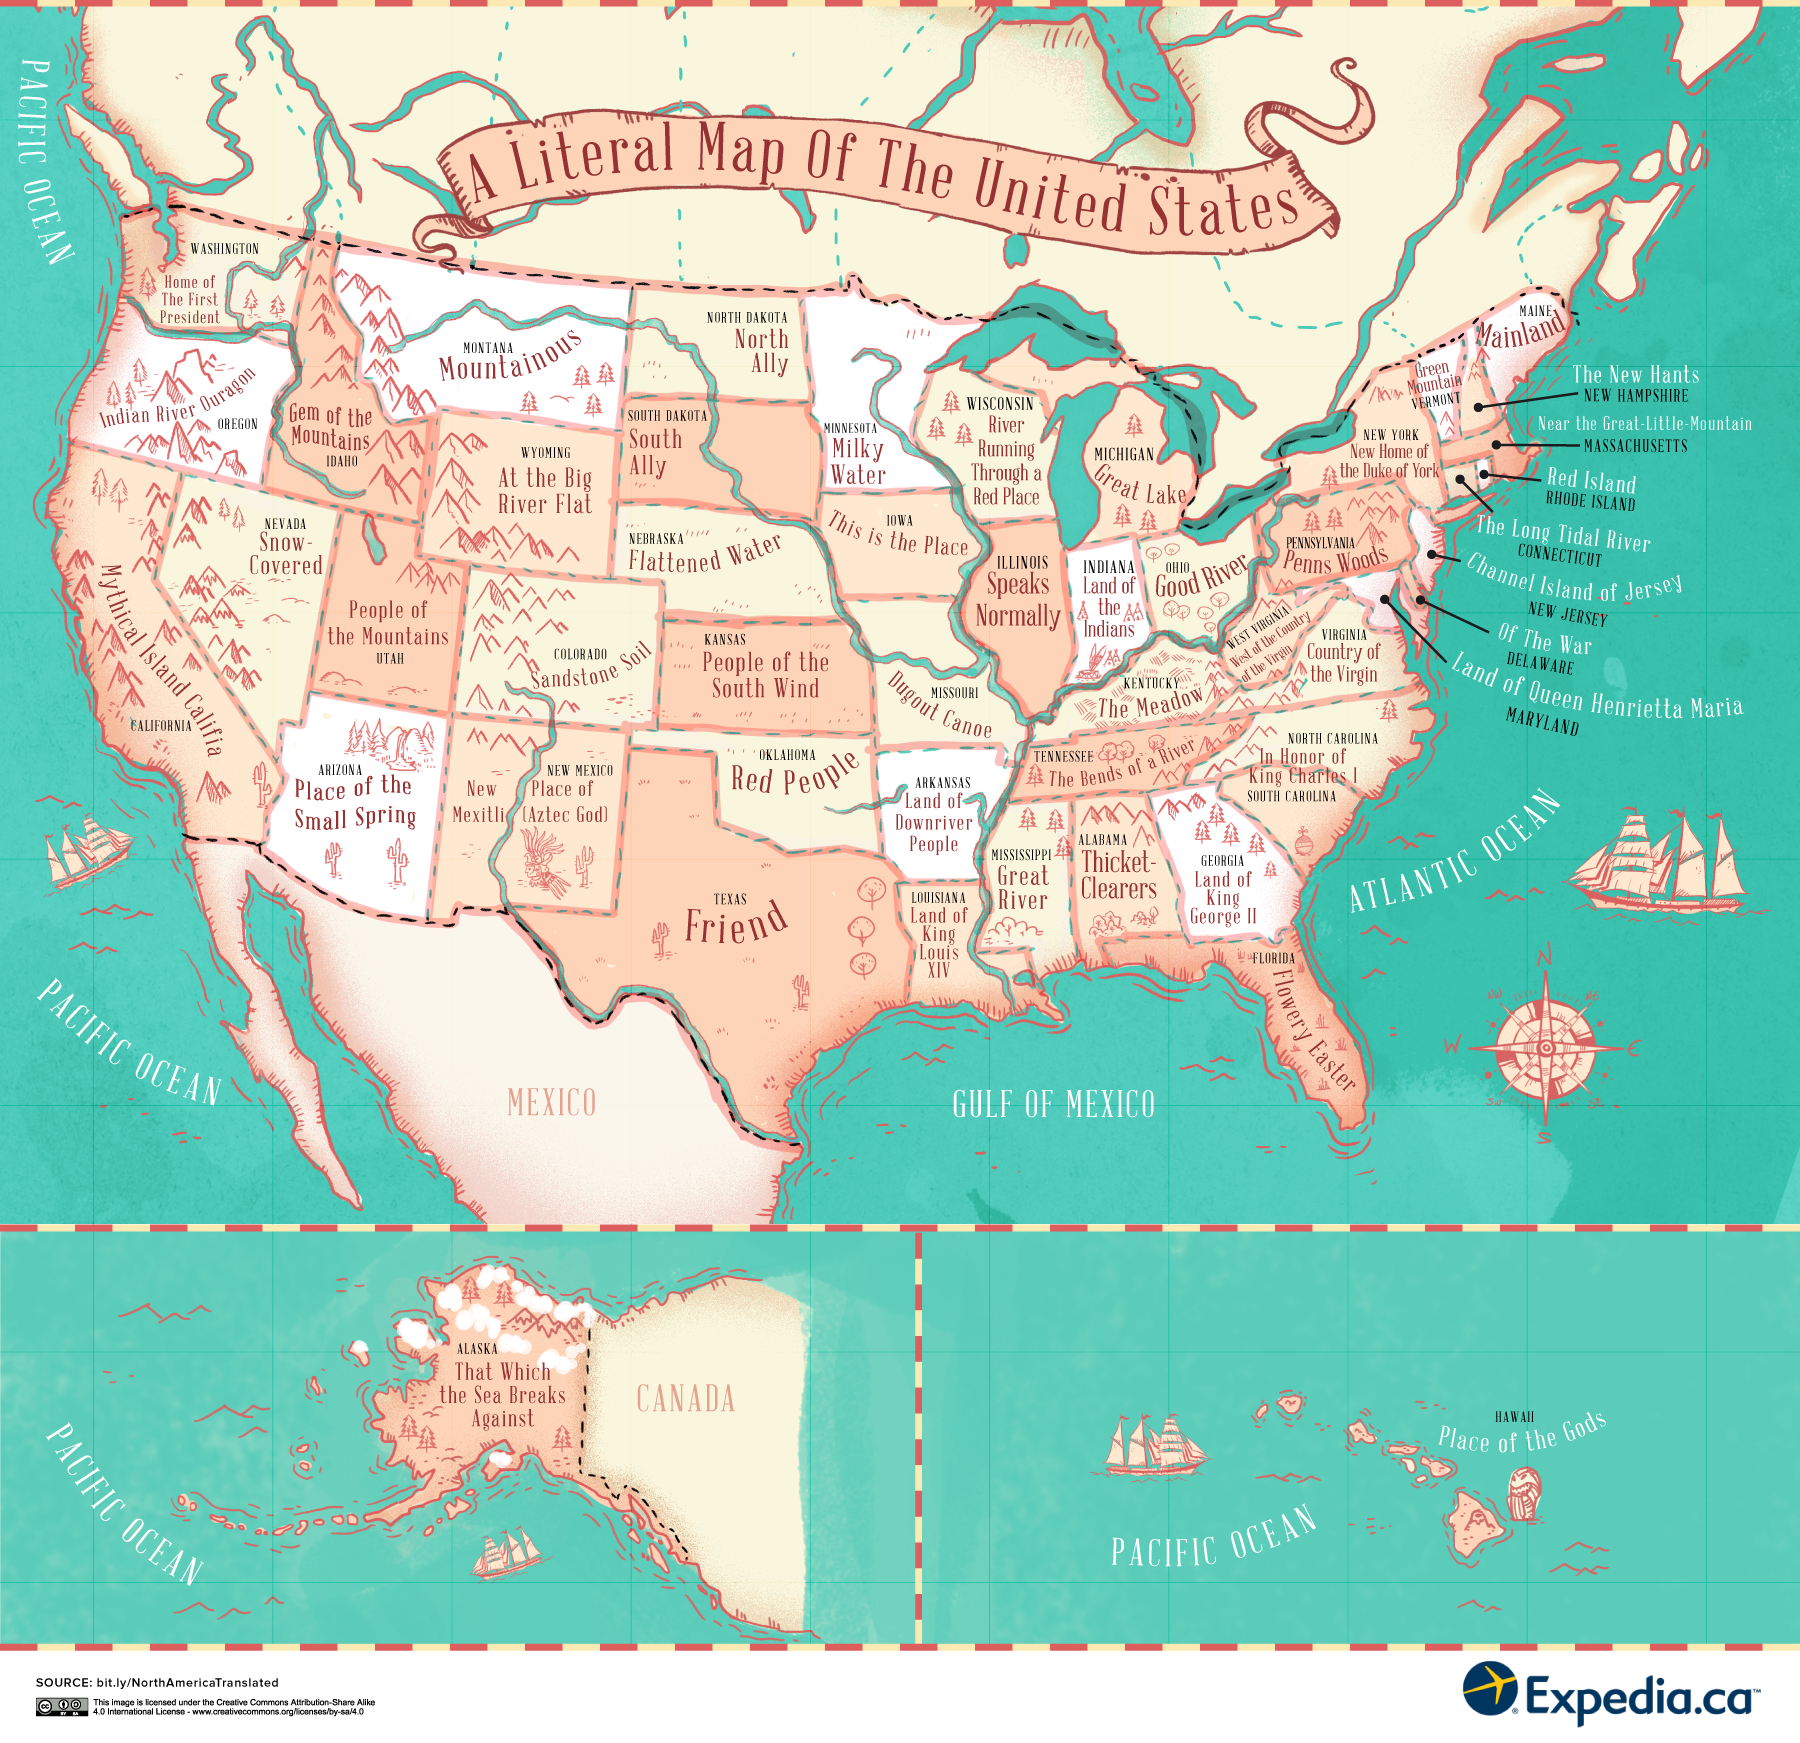 Map Reveals The Meaning Behind Place Names In The USA And Canada - Map of usa and canada